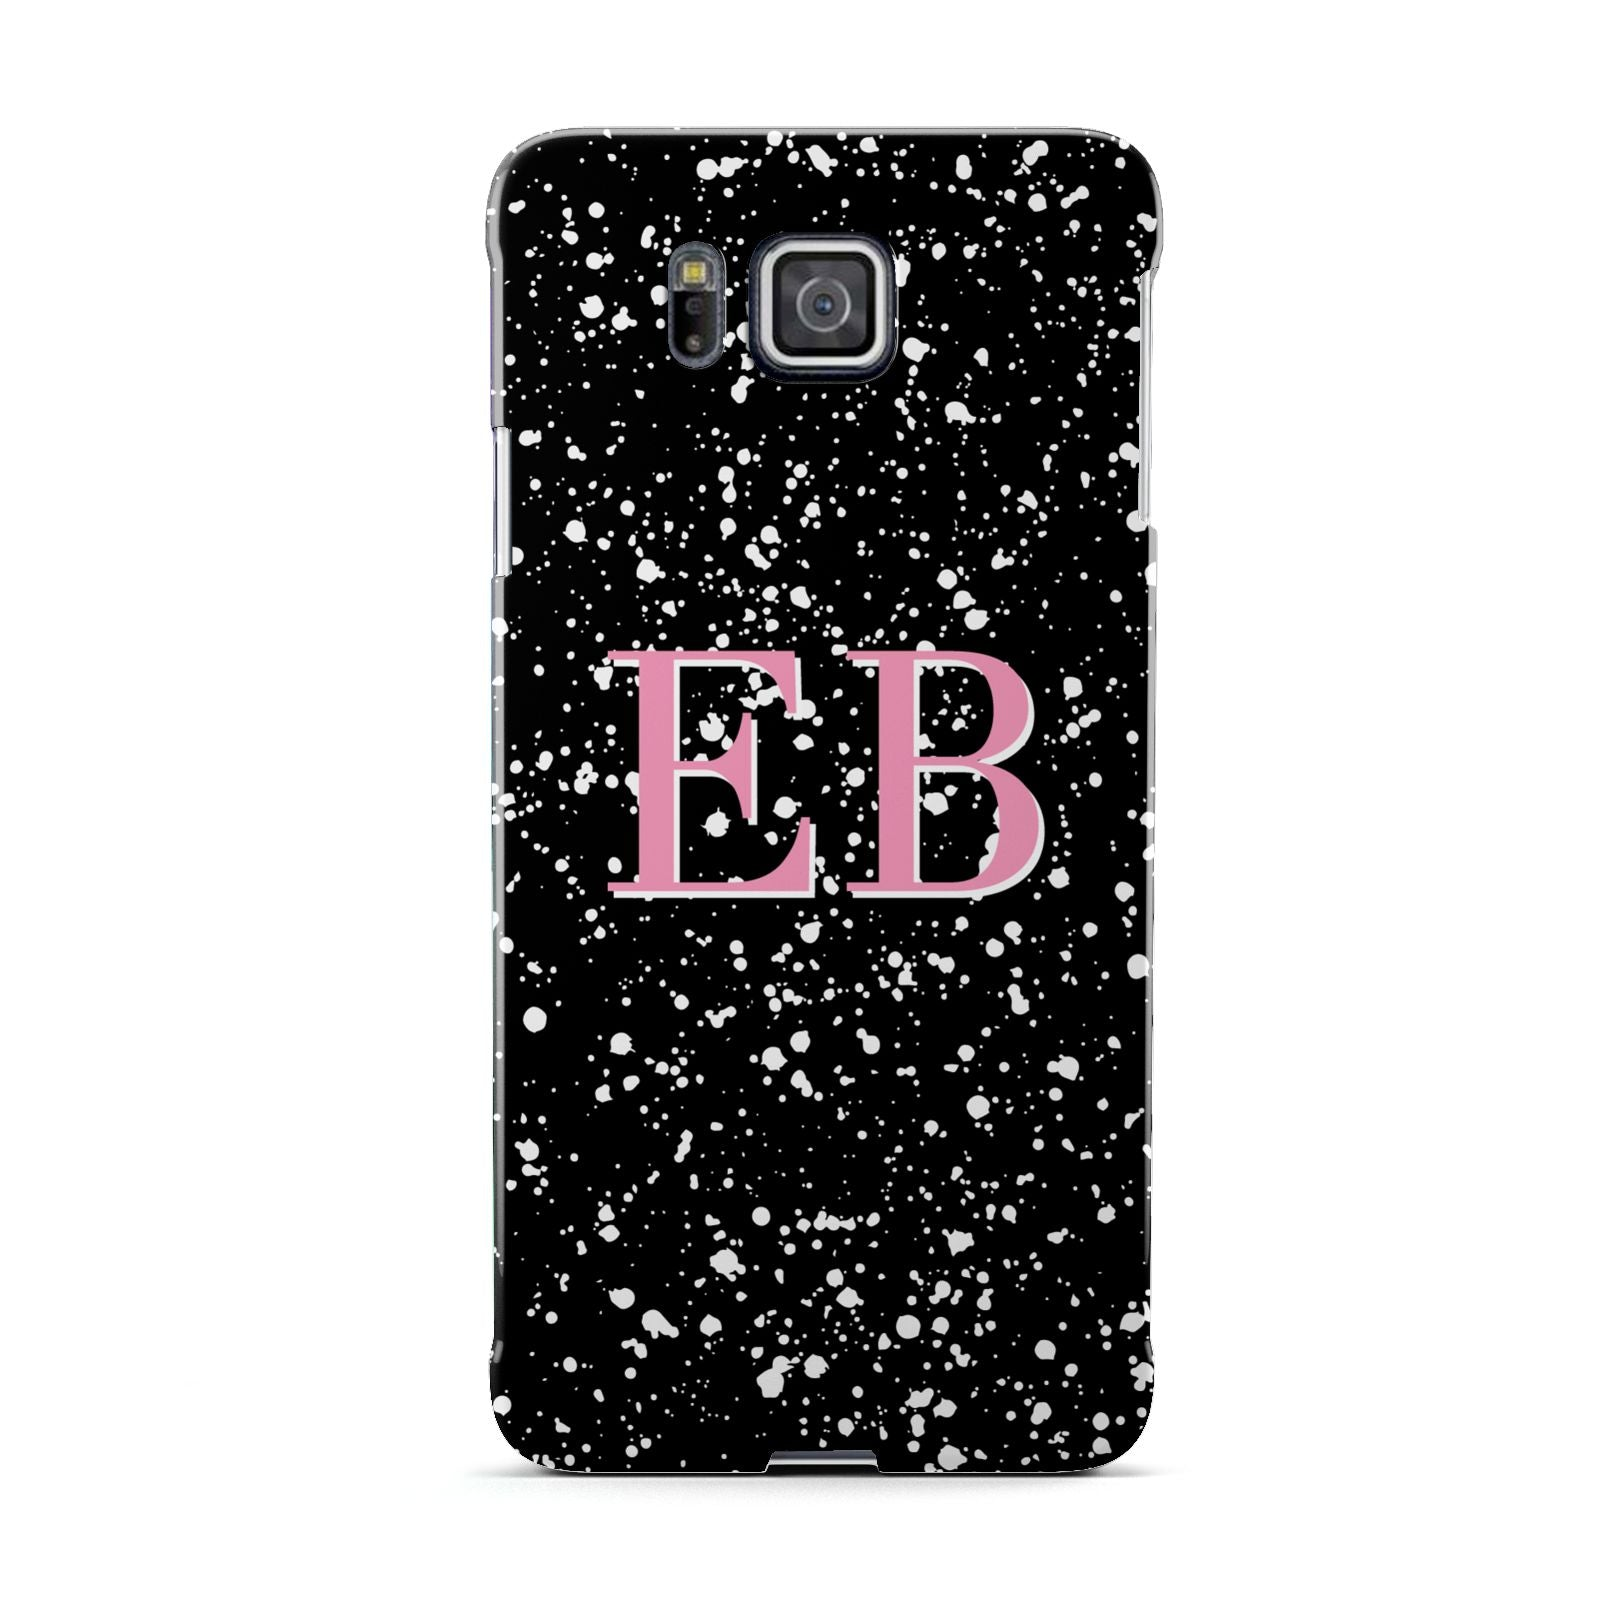 Personalised Black Ink Splat Initials Samsung Galaxy Alpha Case